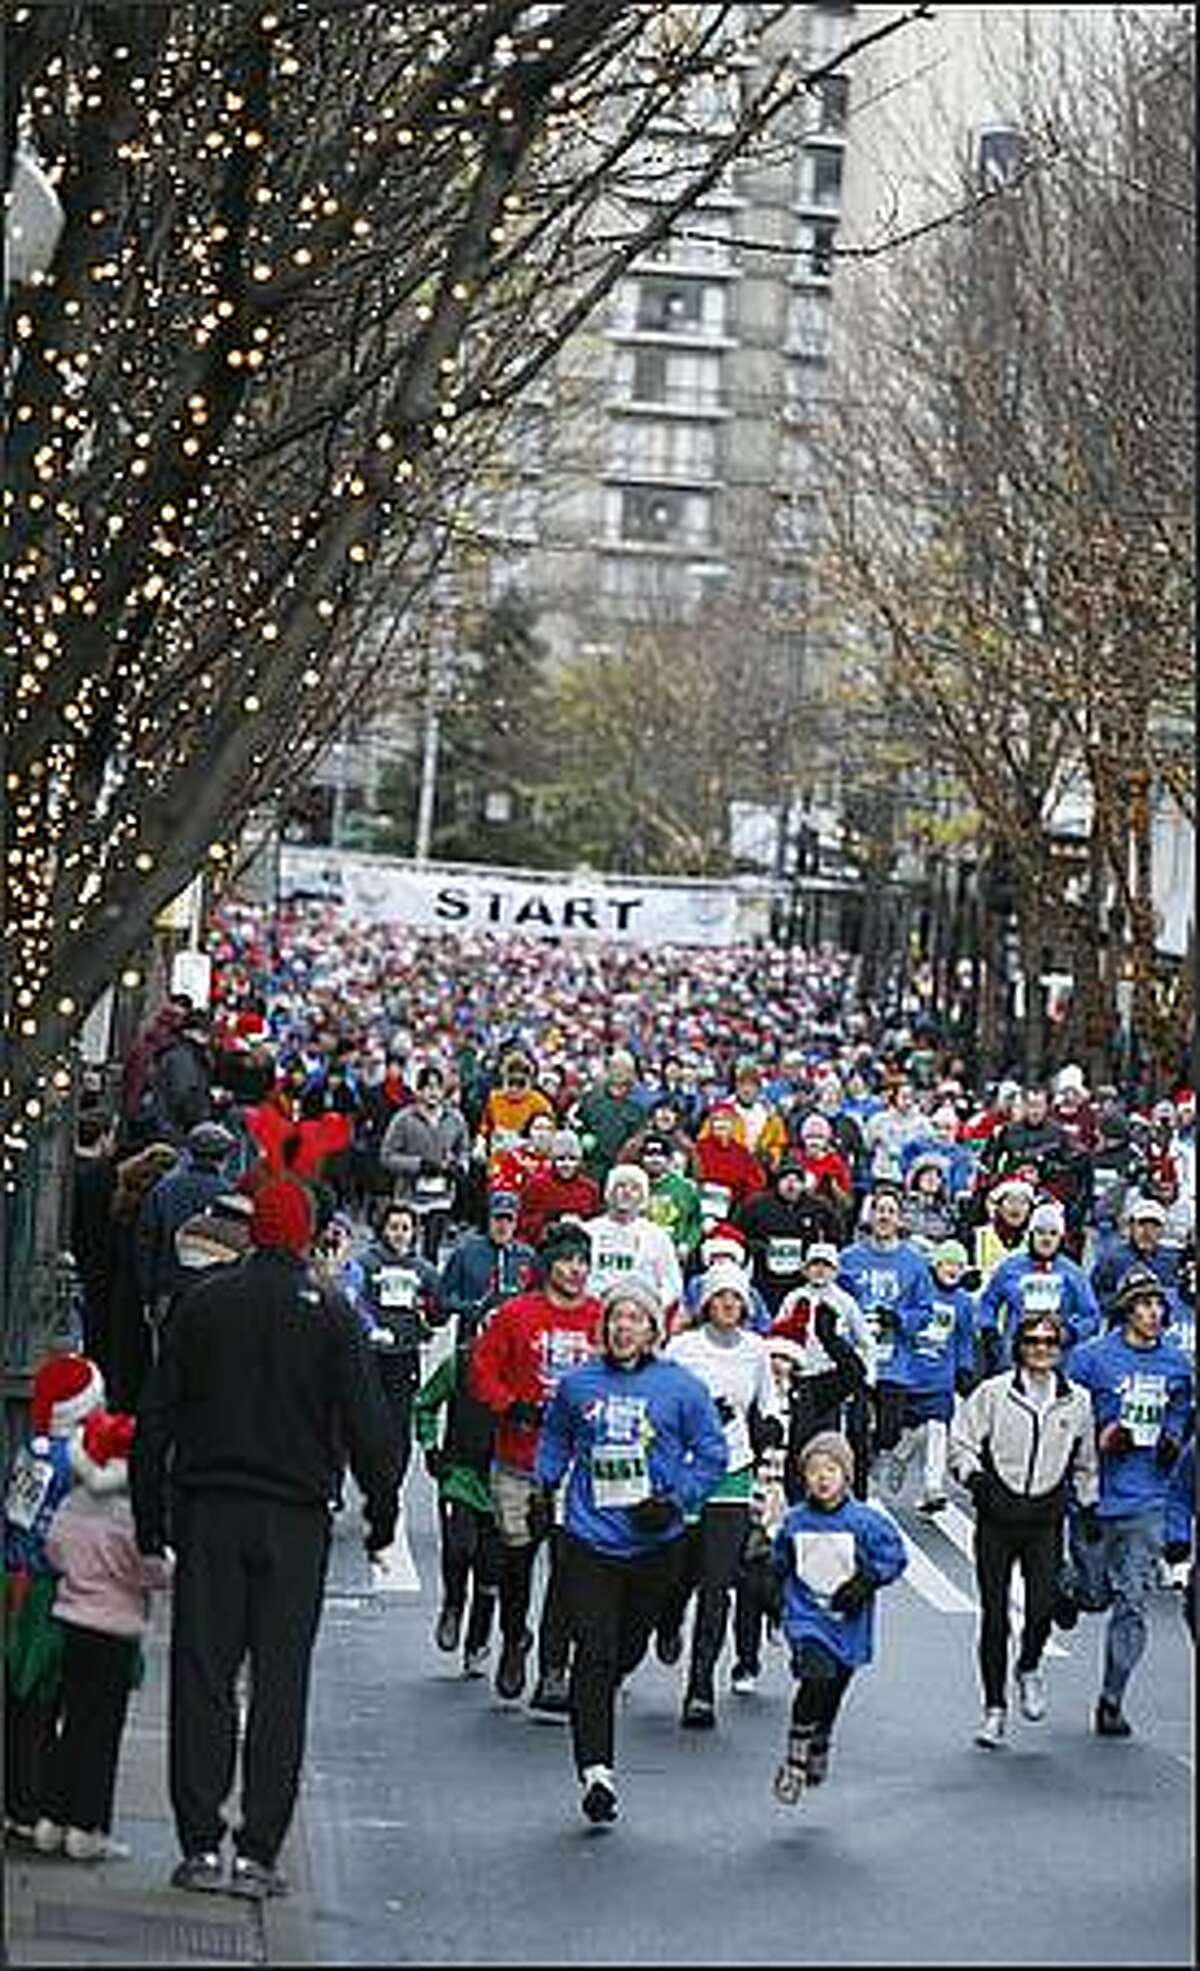 Participants in the 24th Annual Jingle Bell Run 5K run up Fifth Avenue.